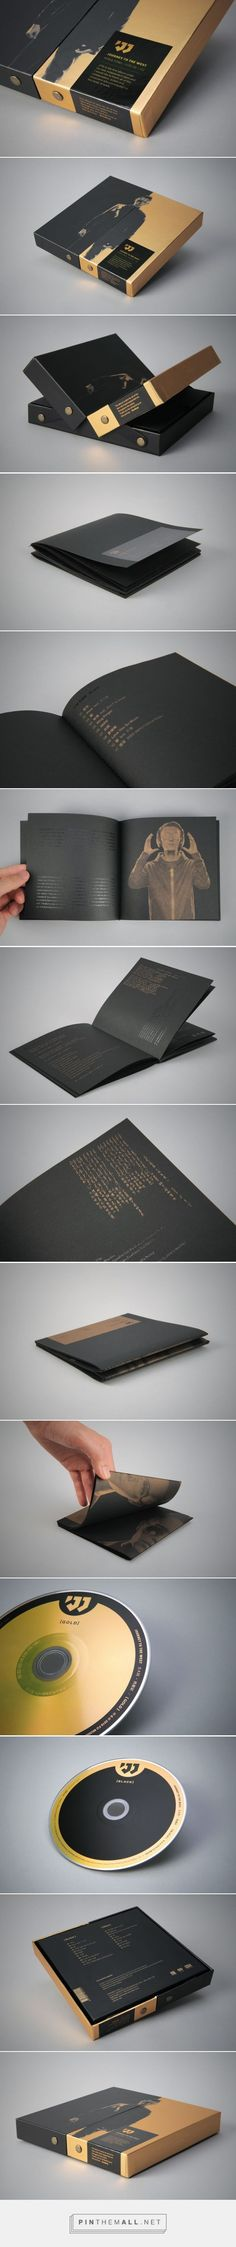 Khalil Fong's Journey To The West album design by Chen-Huang Chian - http://www.packagingoftheworld.com/2016/10/khalil-fong-journey-to-west.html